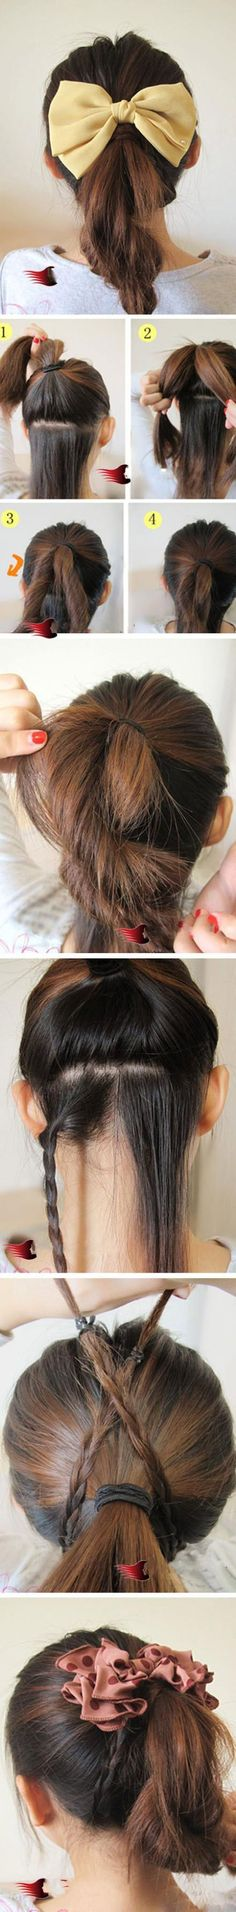 hairstyle with bow and braid